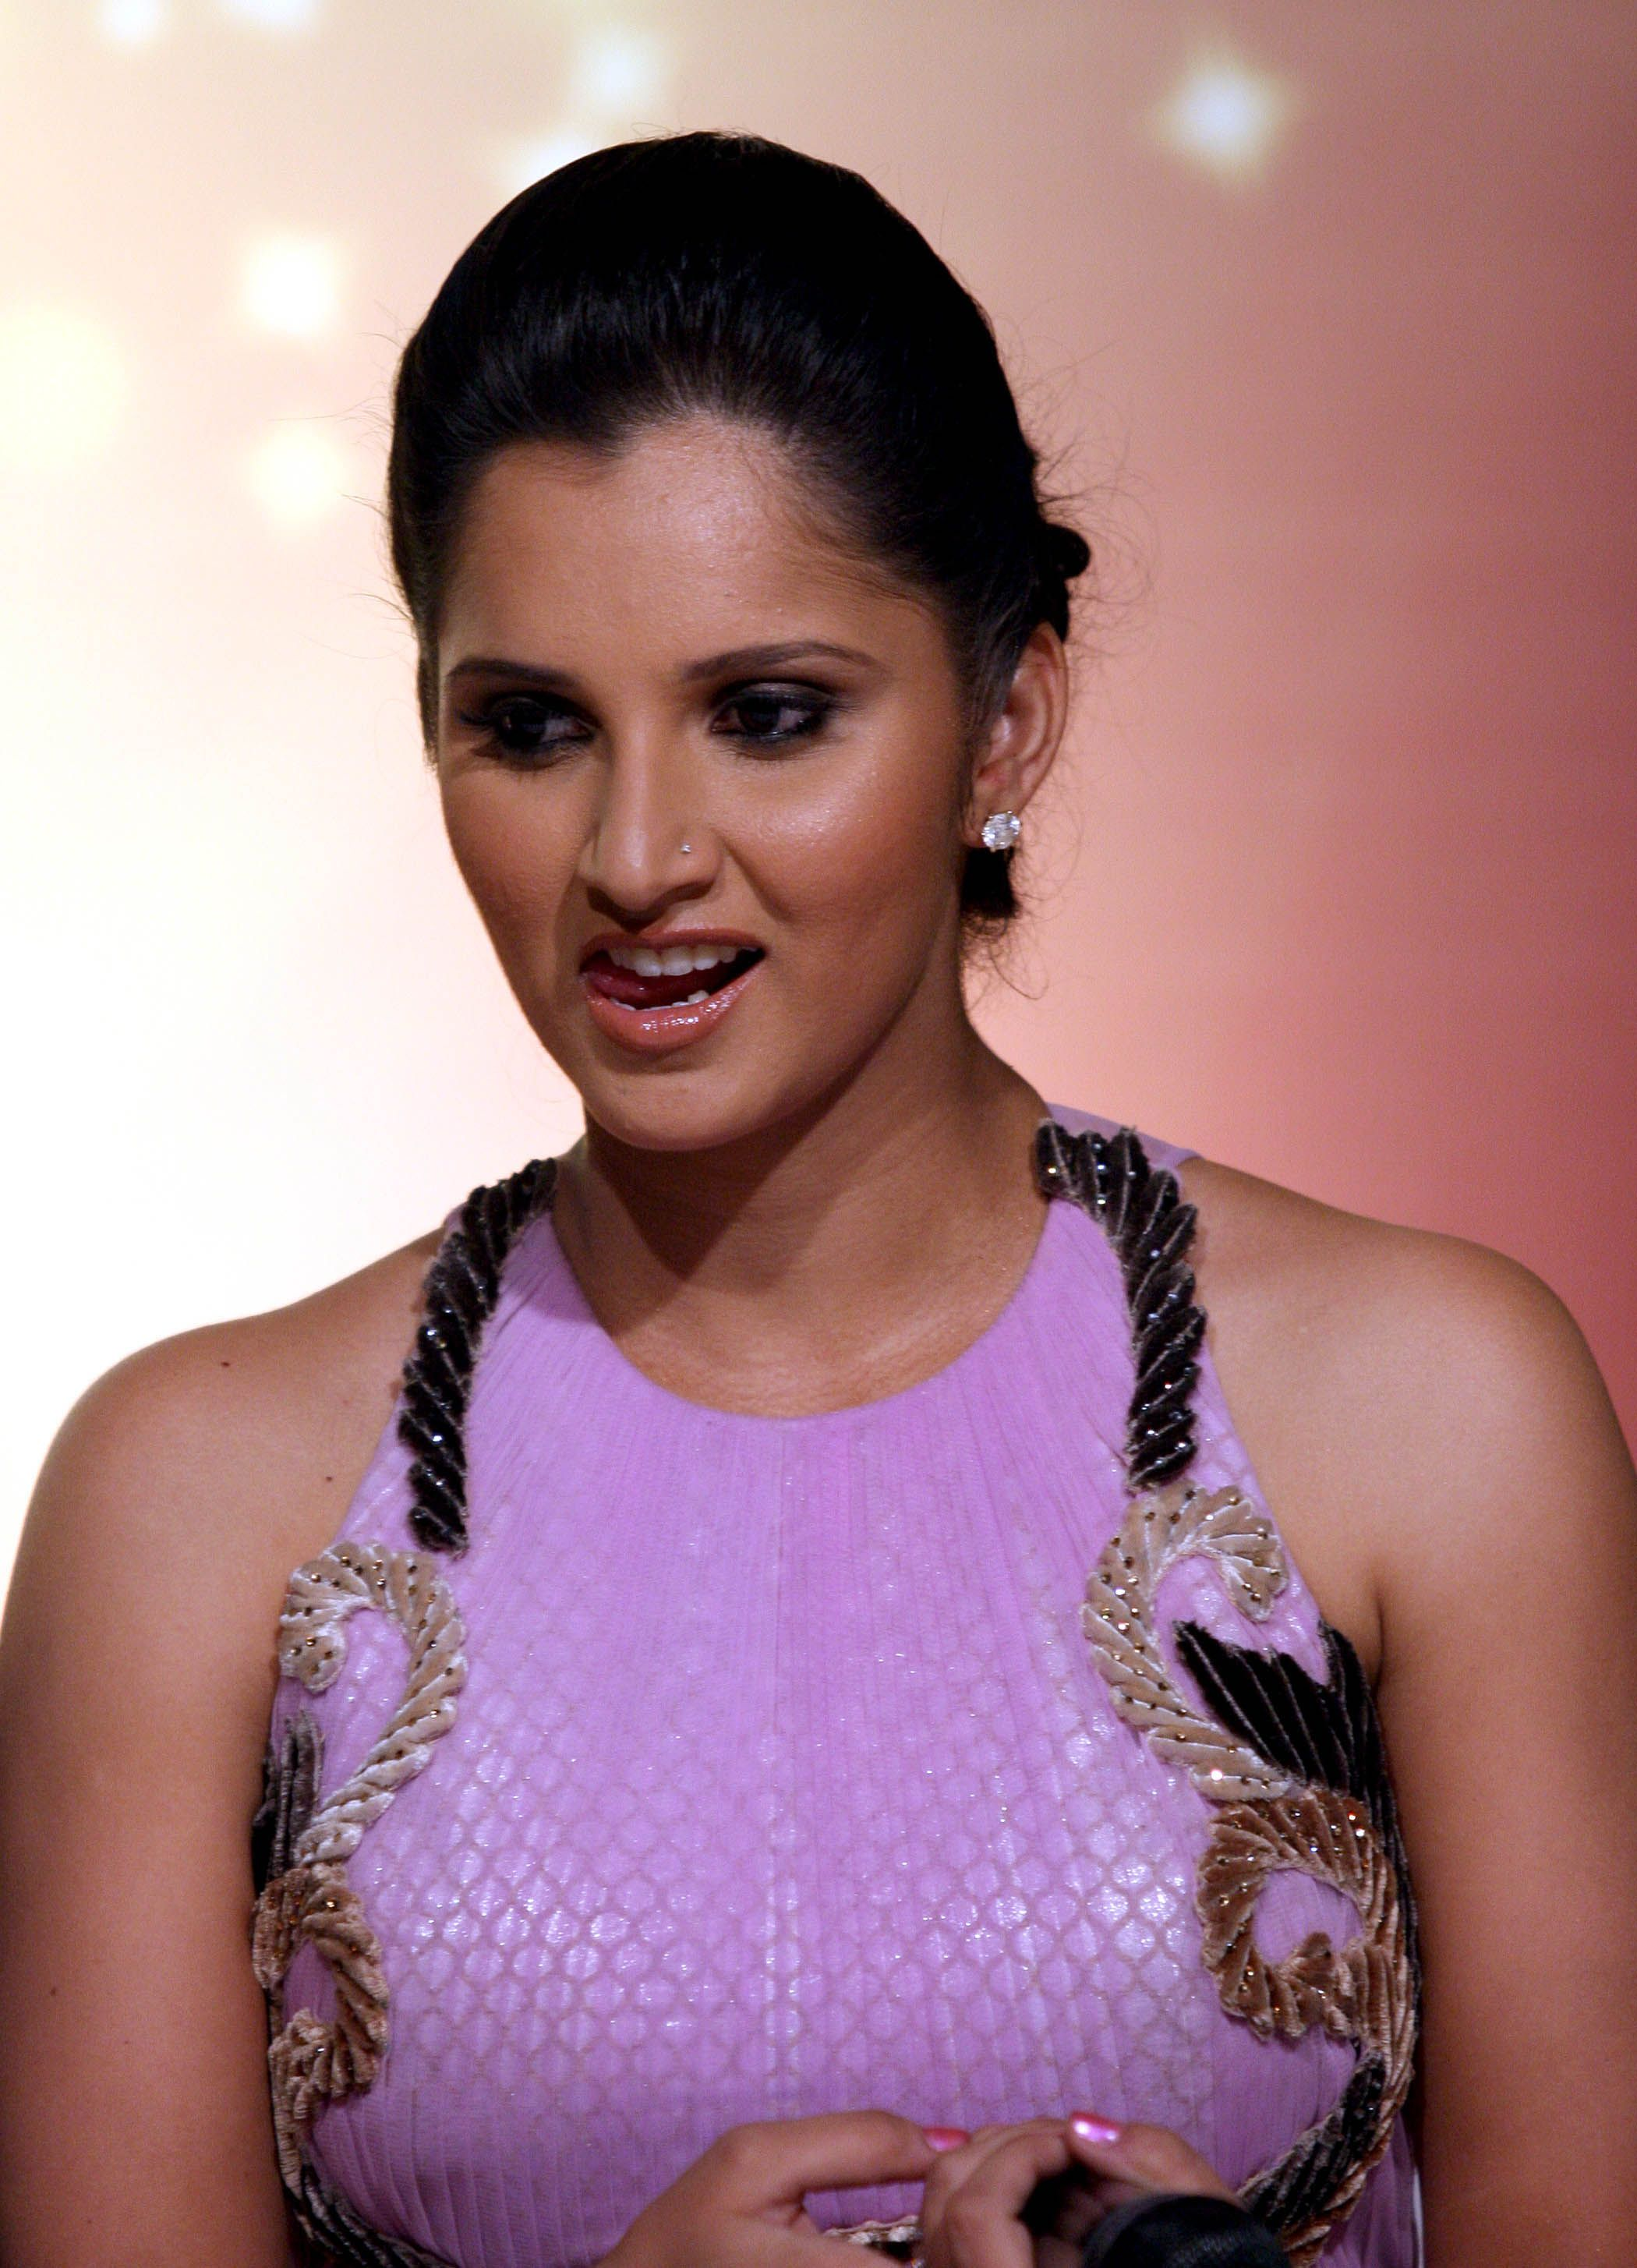 The Lovely Sania Mirza From India - Sania Is One Of The -2422